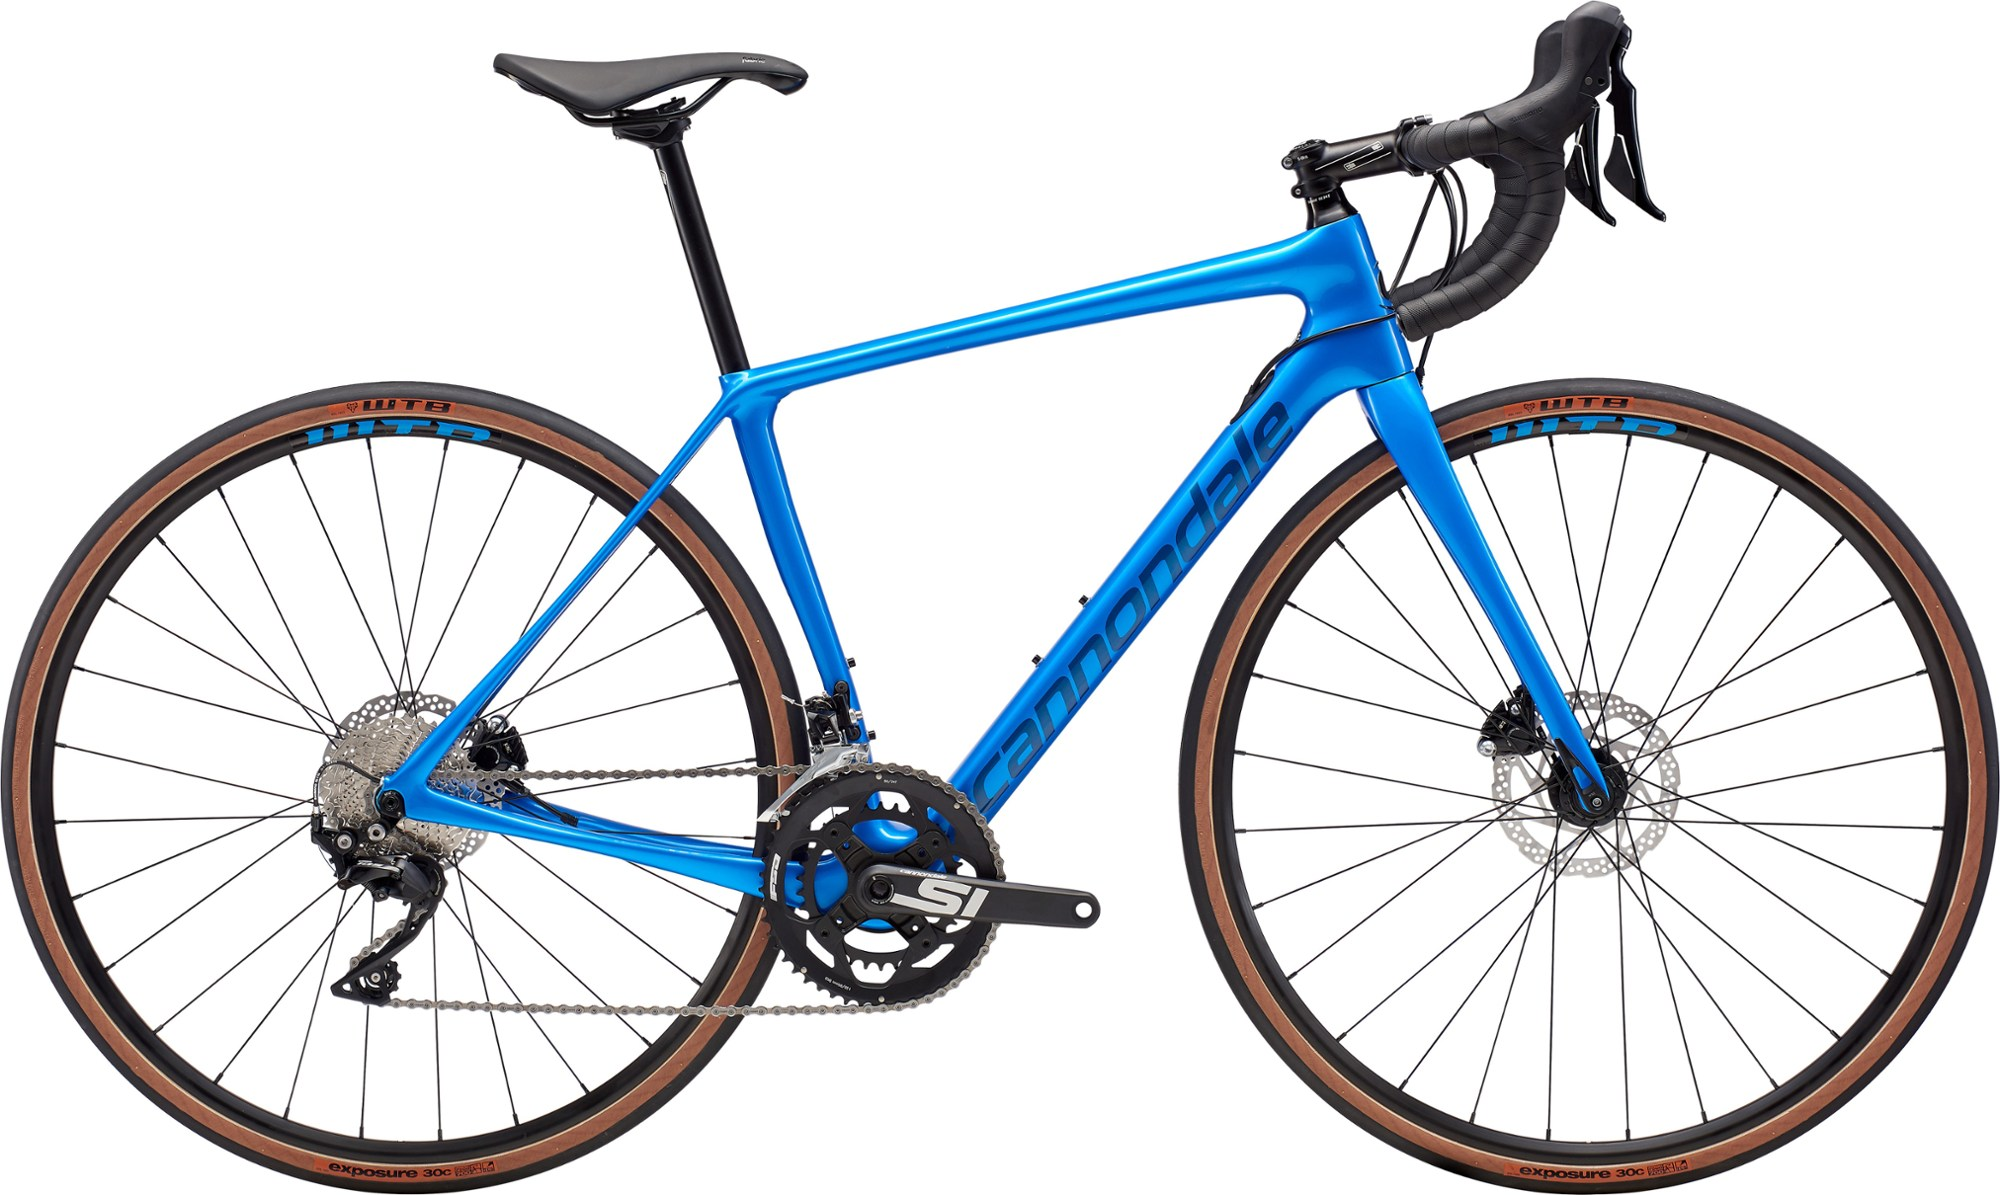 Cannondale Synapse Carbon Disc 105 SE Women's Bike - 2019